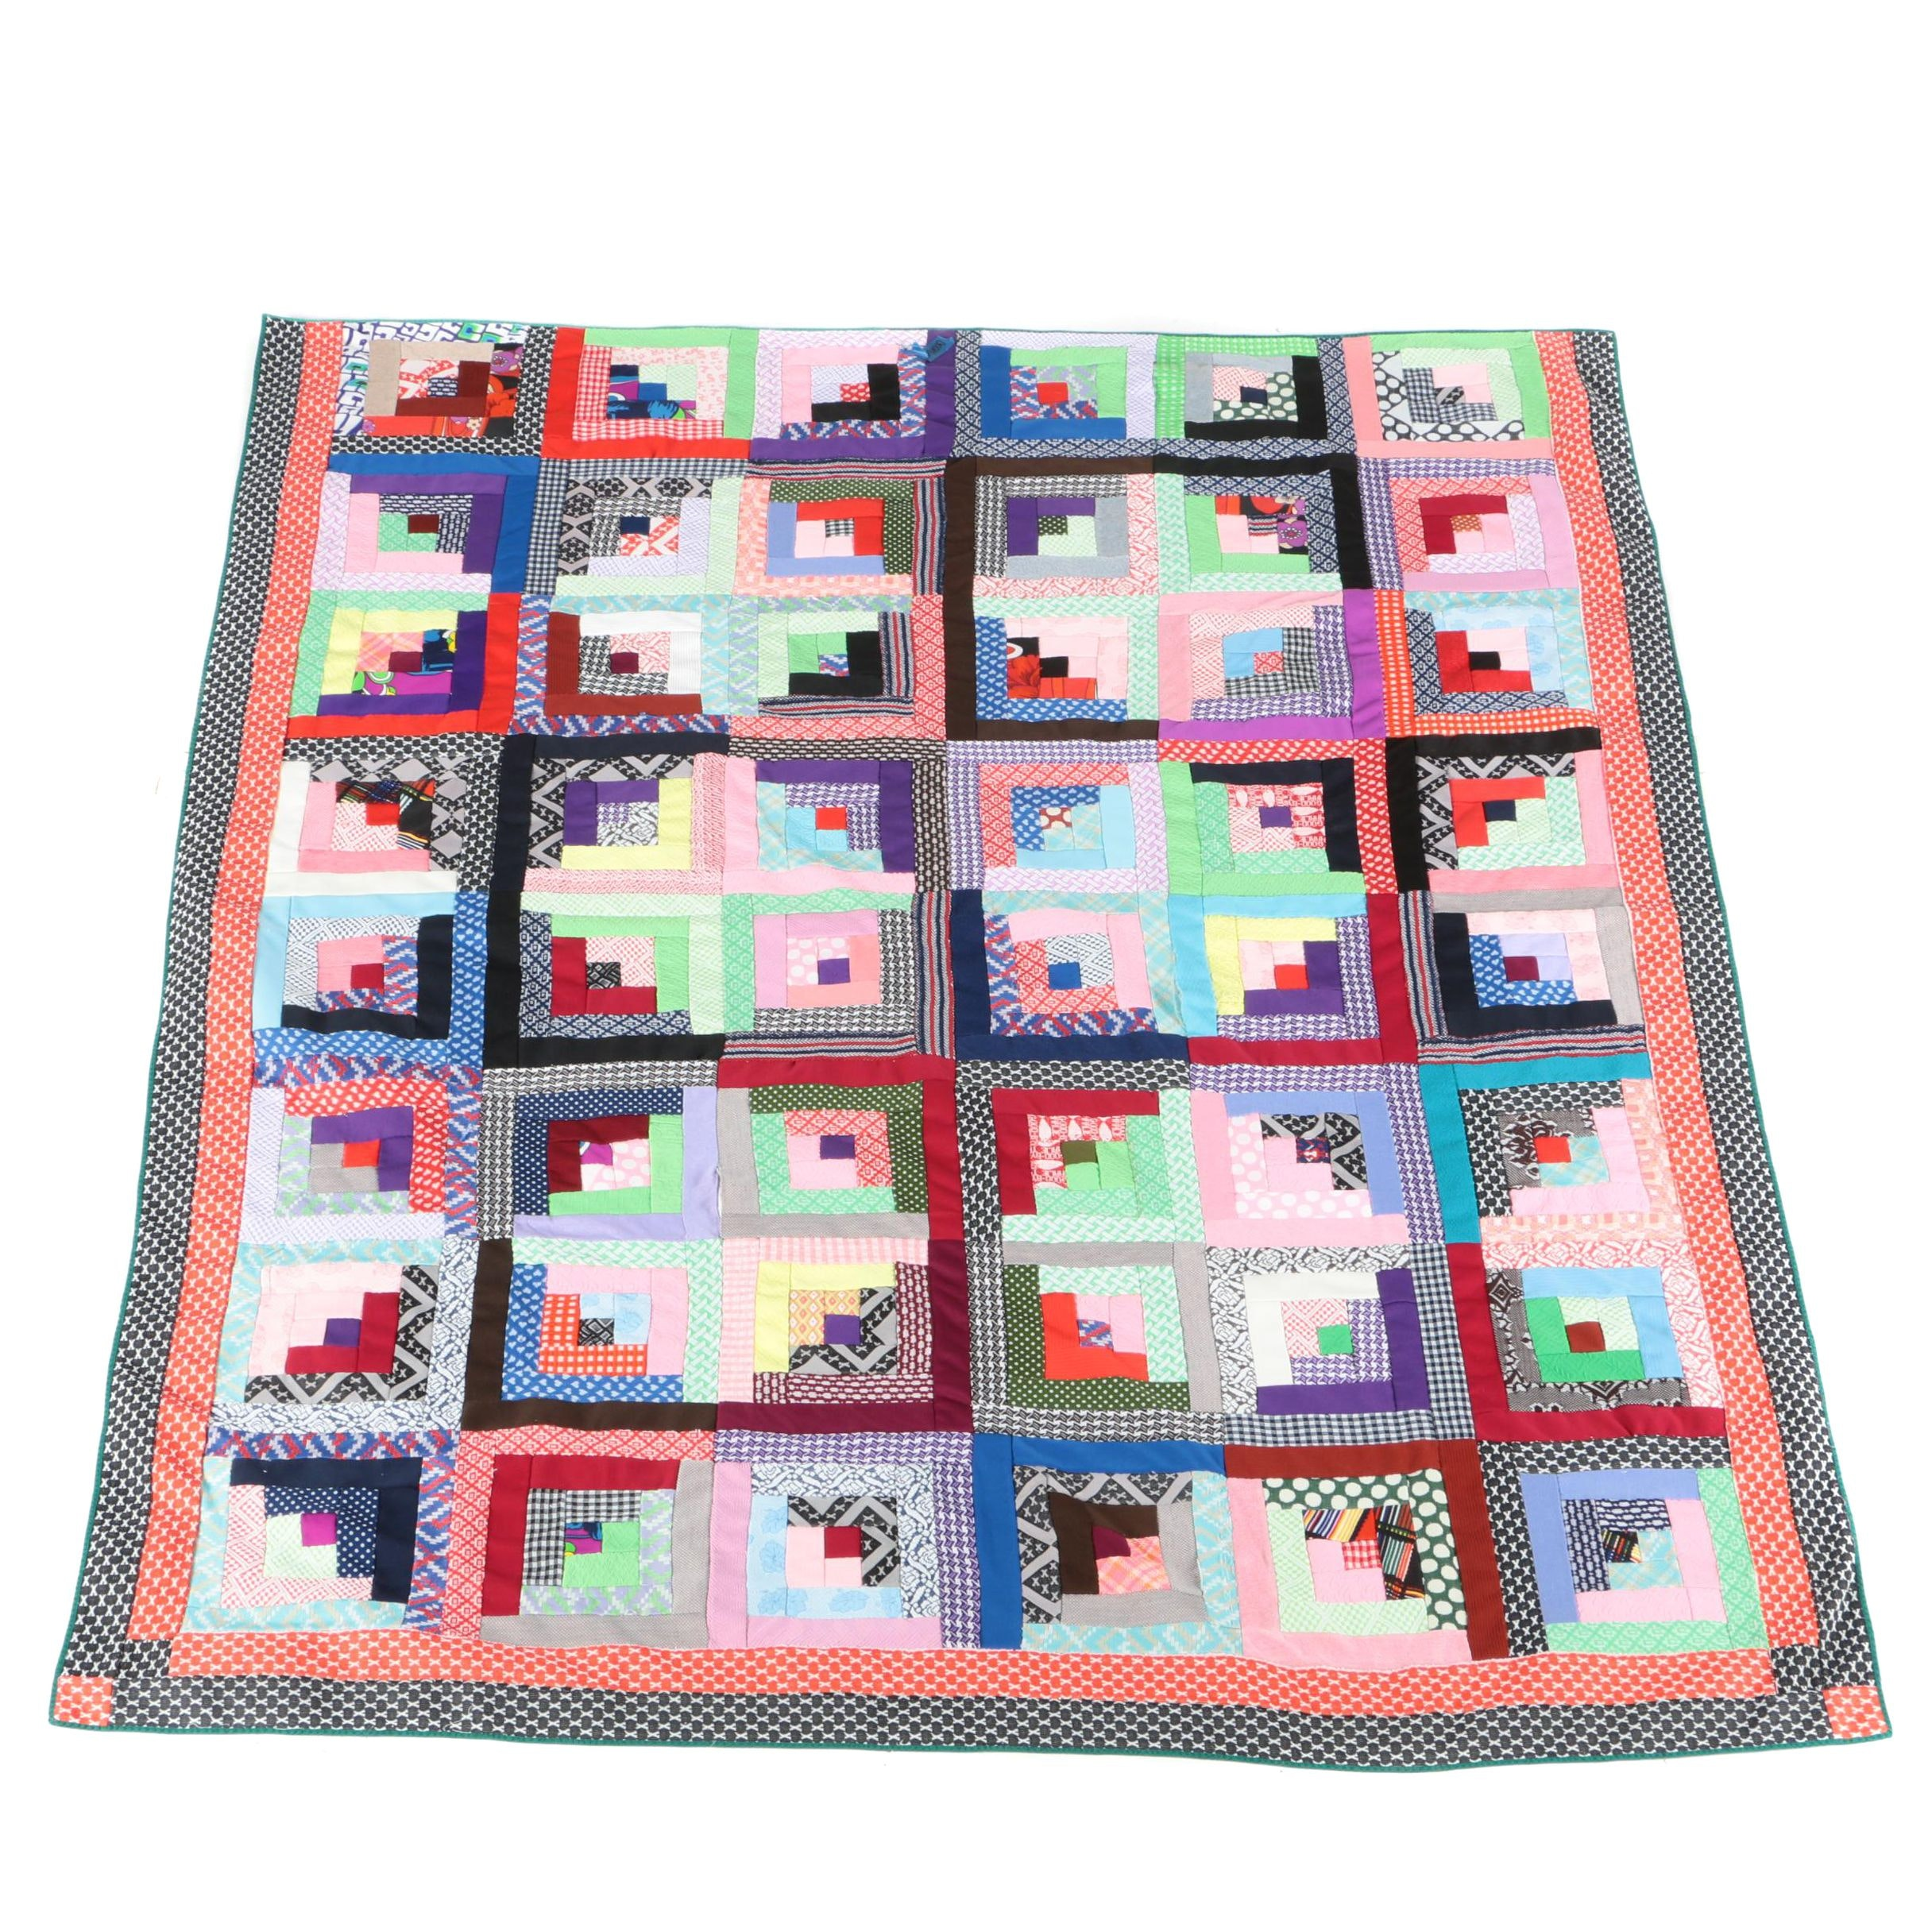 Colorful Handcrafted Quilt